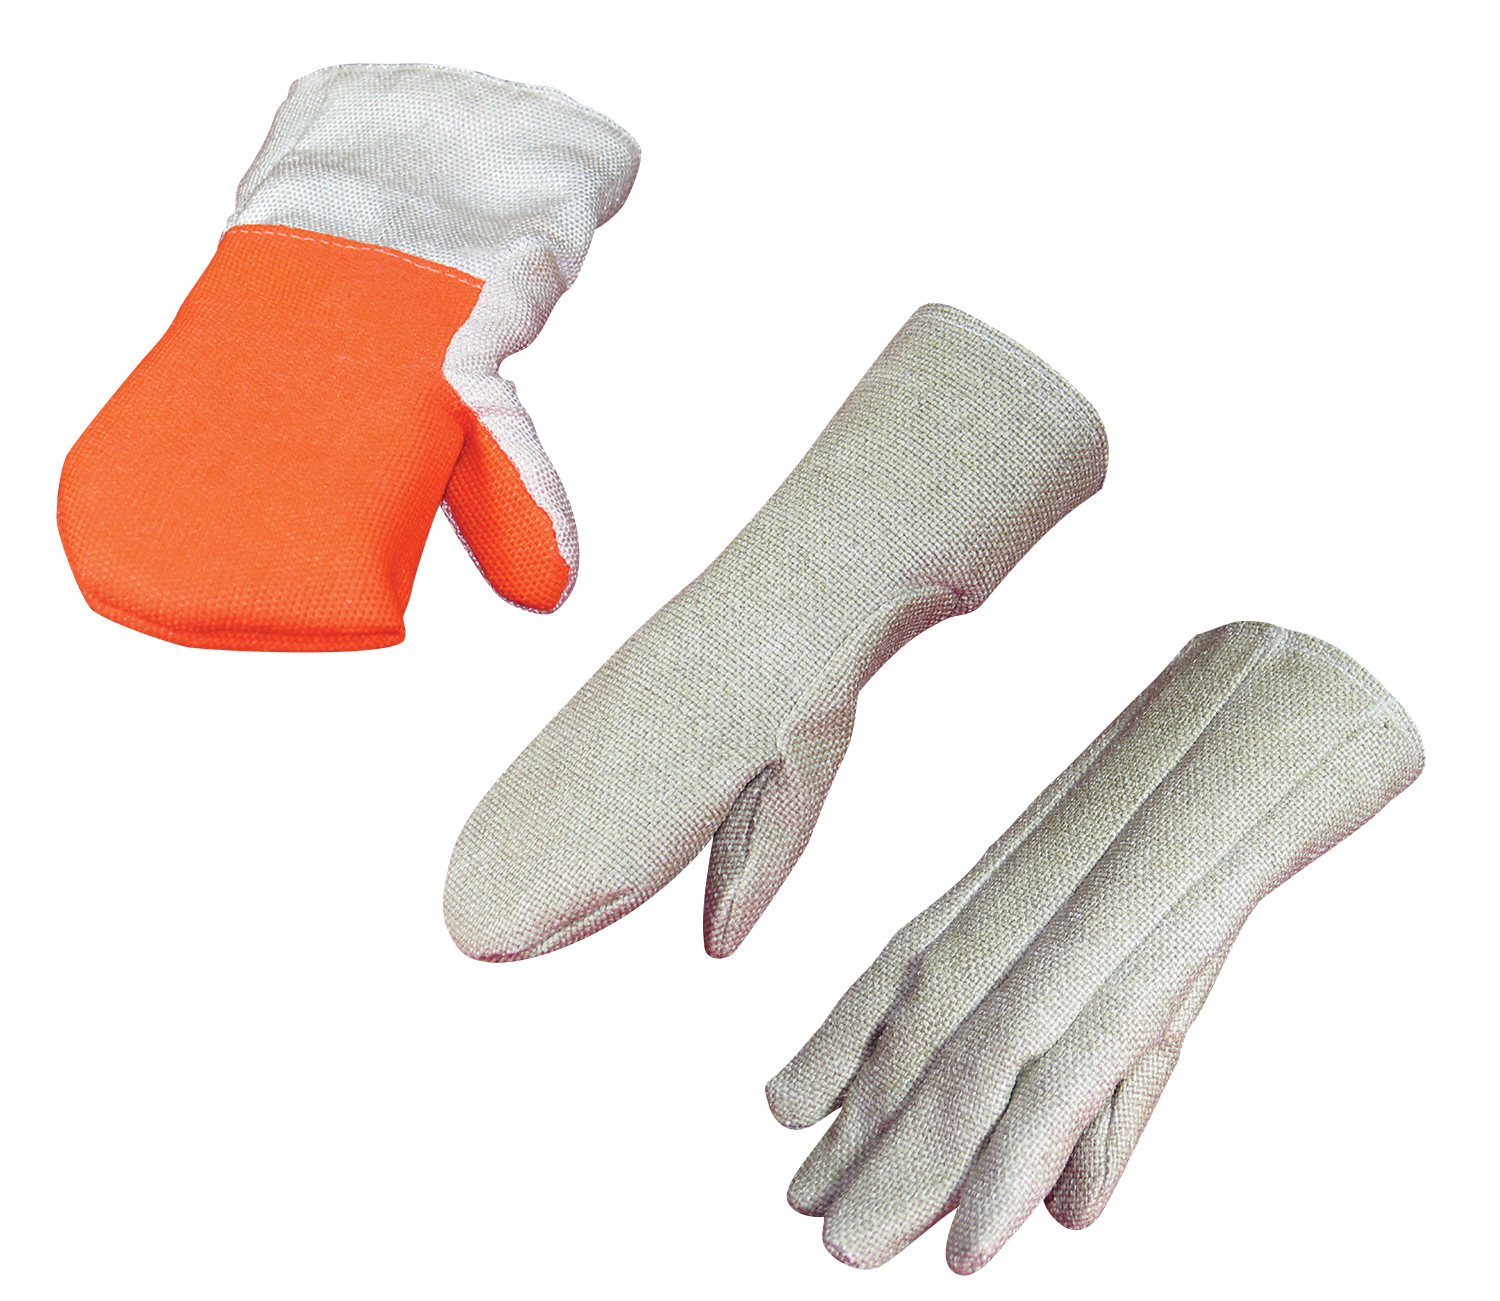 3R33 3R37 3R38 Industries3R High temperature products Gloves Hands